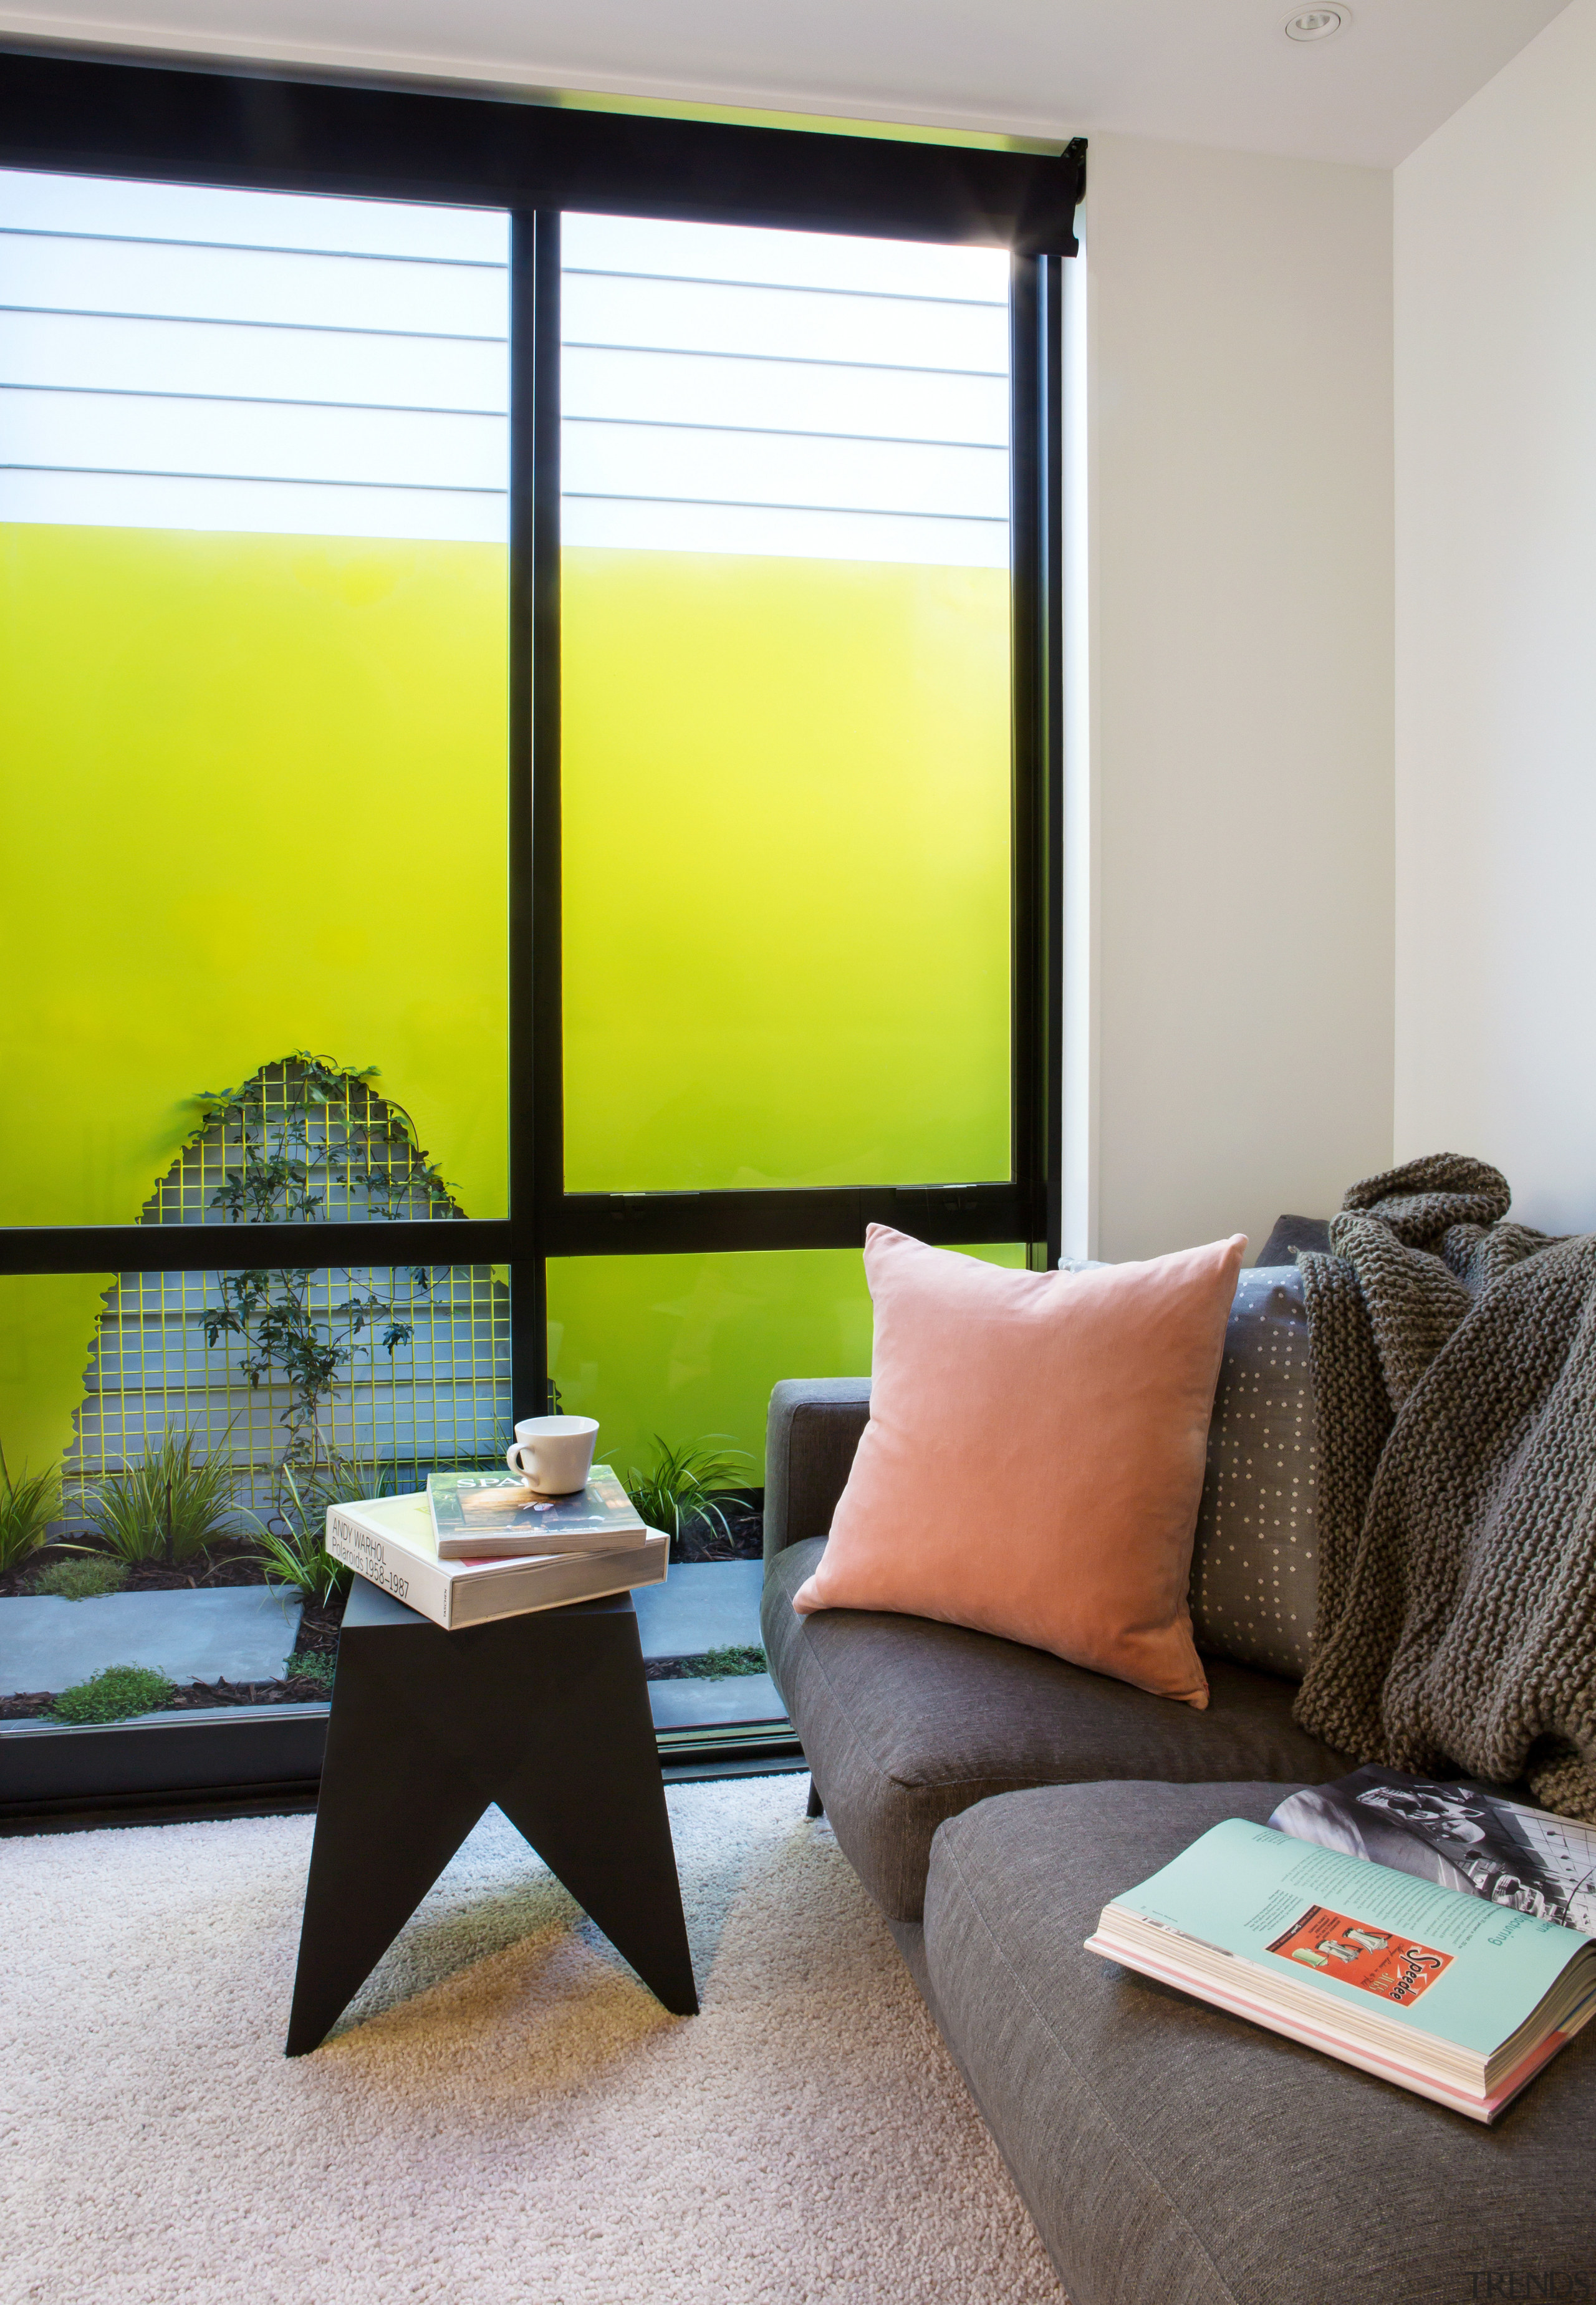 As well as enjoying views to the rear furniture, home, house, interior design, living room, room, table, window, window blind, window covering, window treatment, yellow, gray